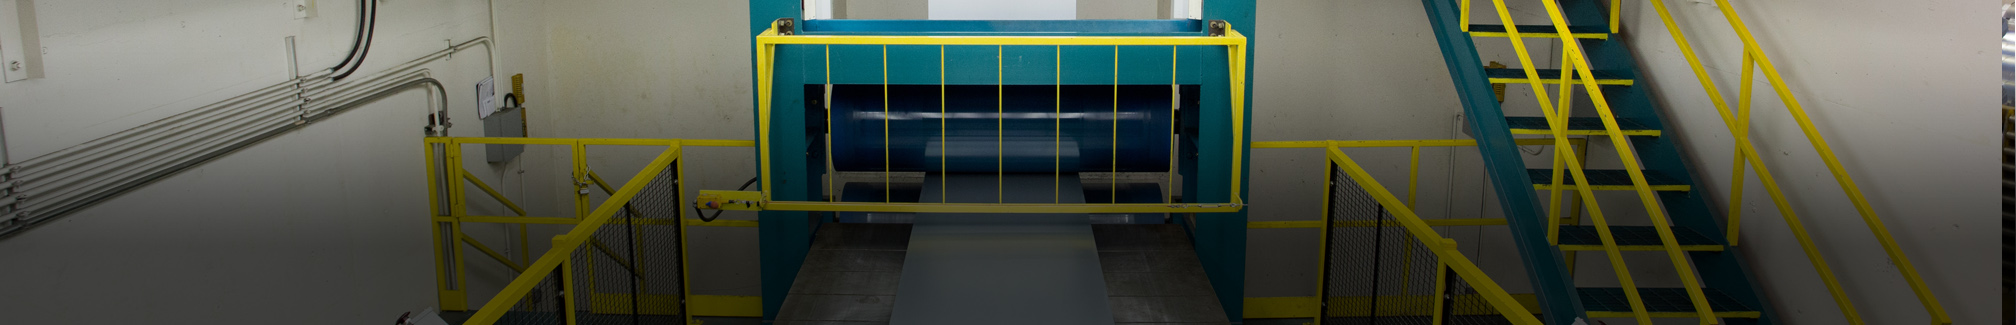 2-sided inspection line